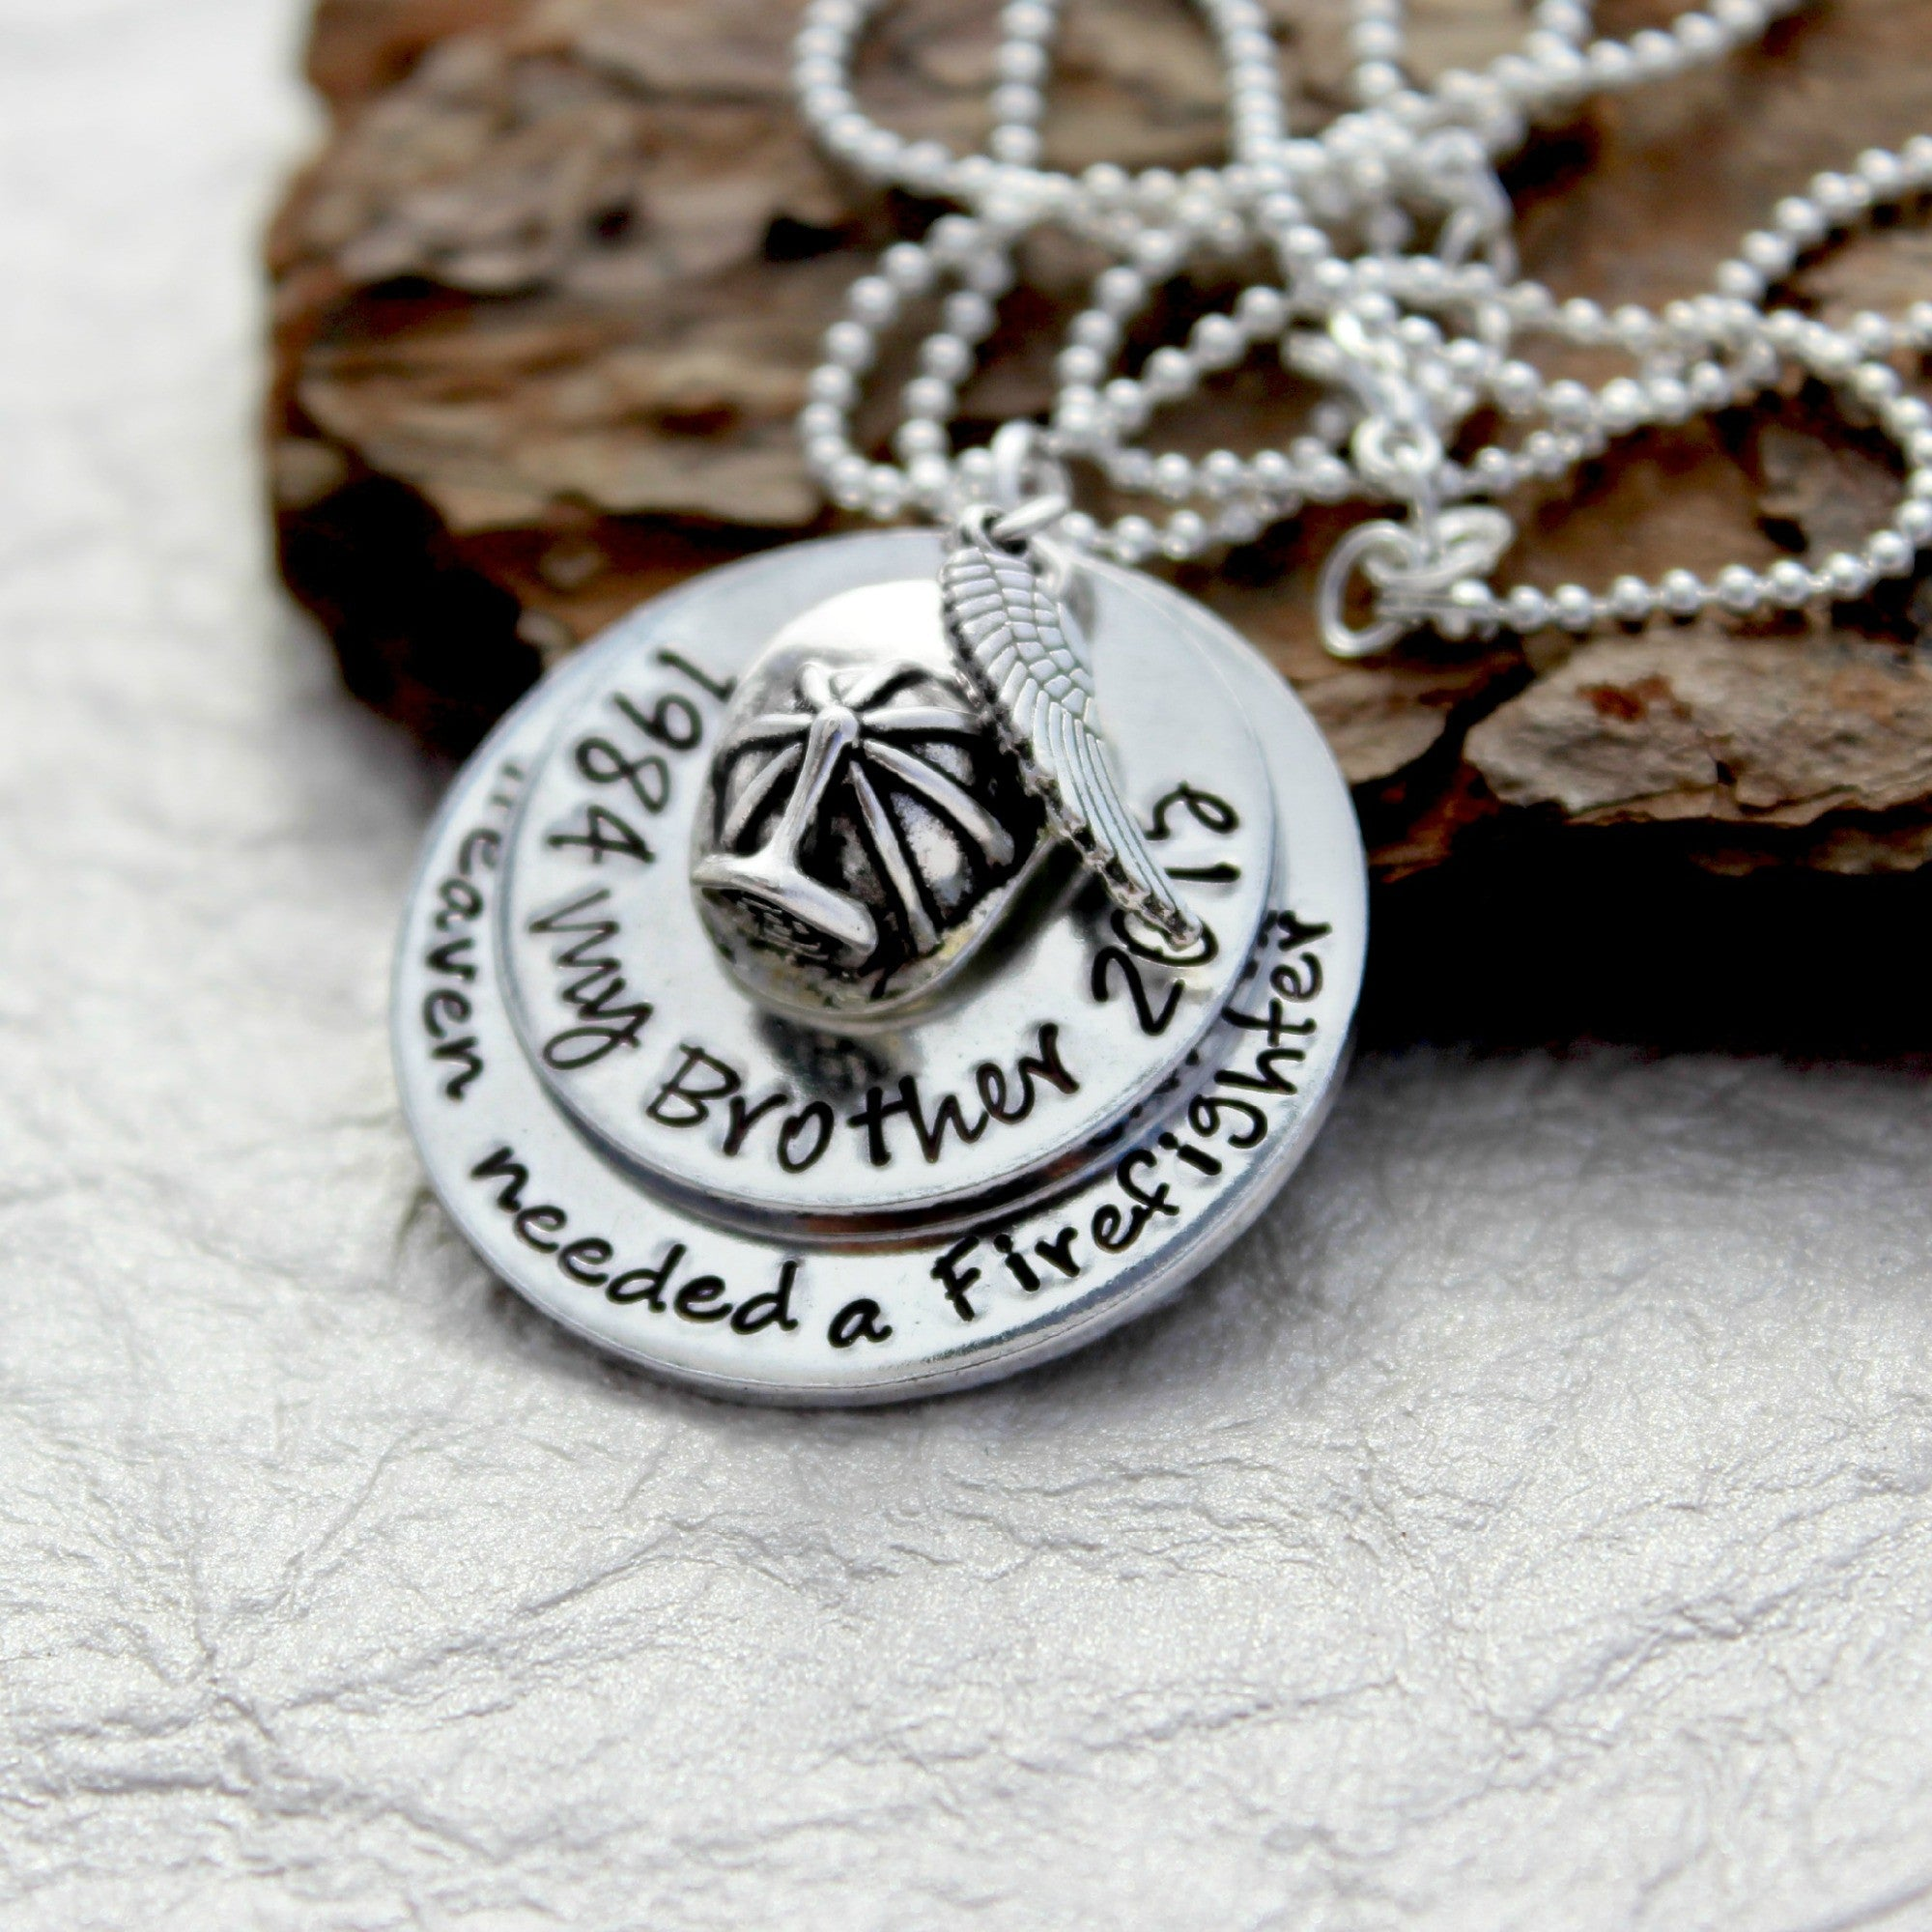 my products in forever necklace pierced jewelry heart memorial rose cross